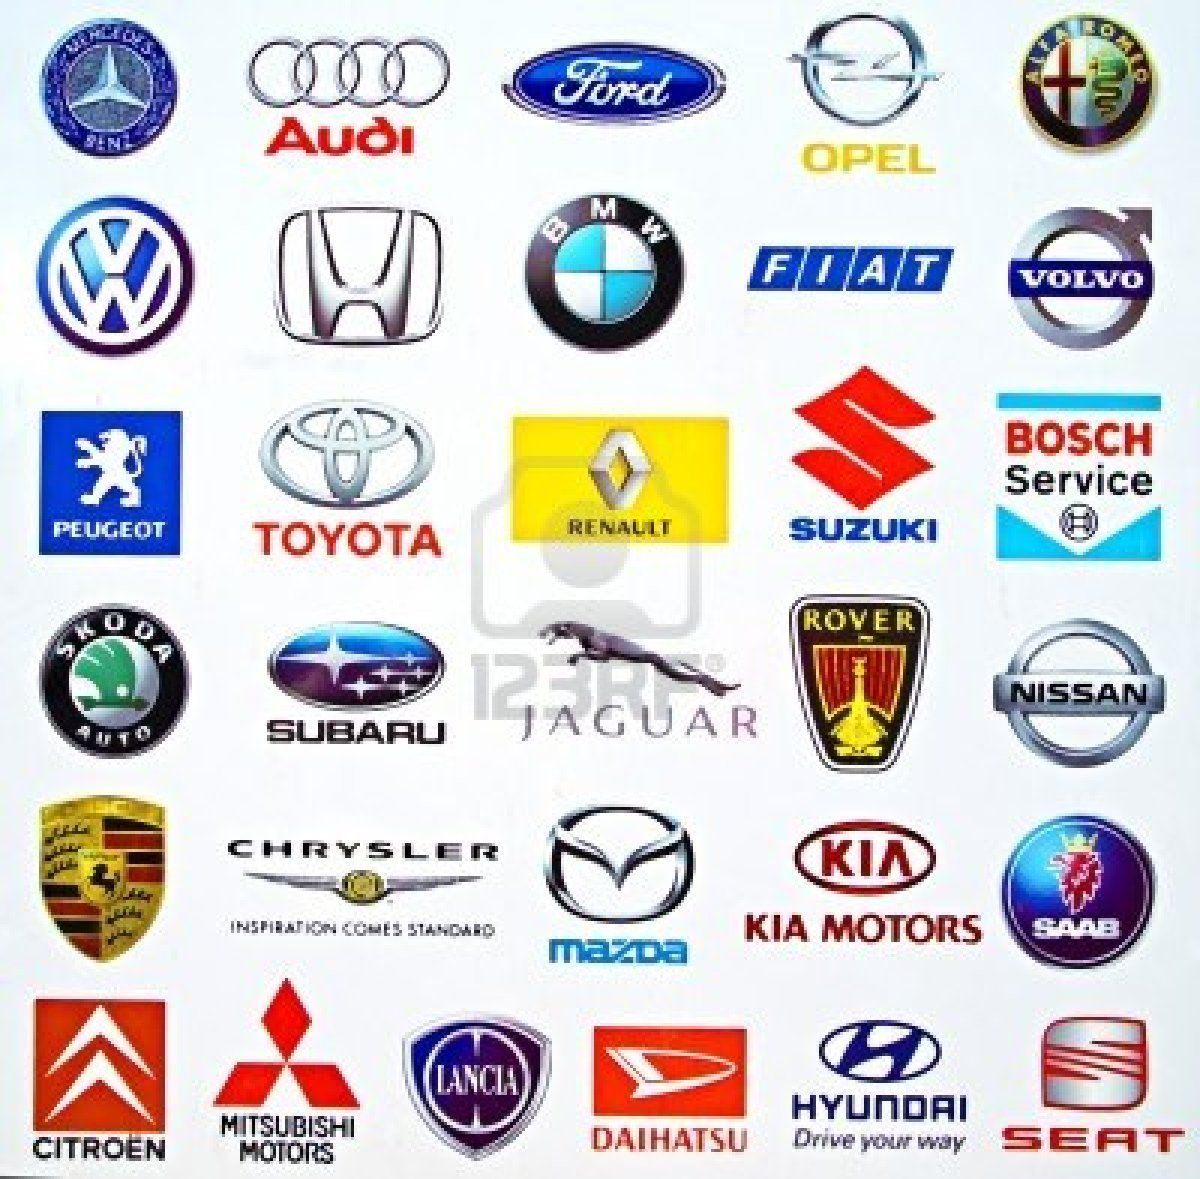 Car Brands That Start With D >> Stock Photo Logo Design Car Brands Logos Logos Design